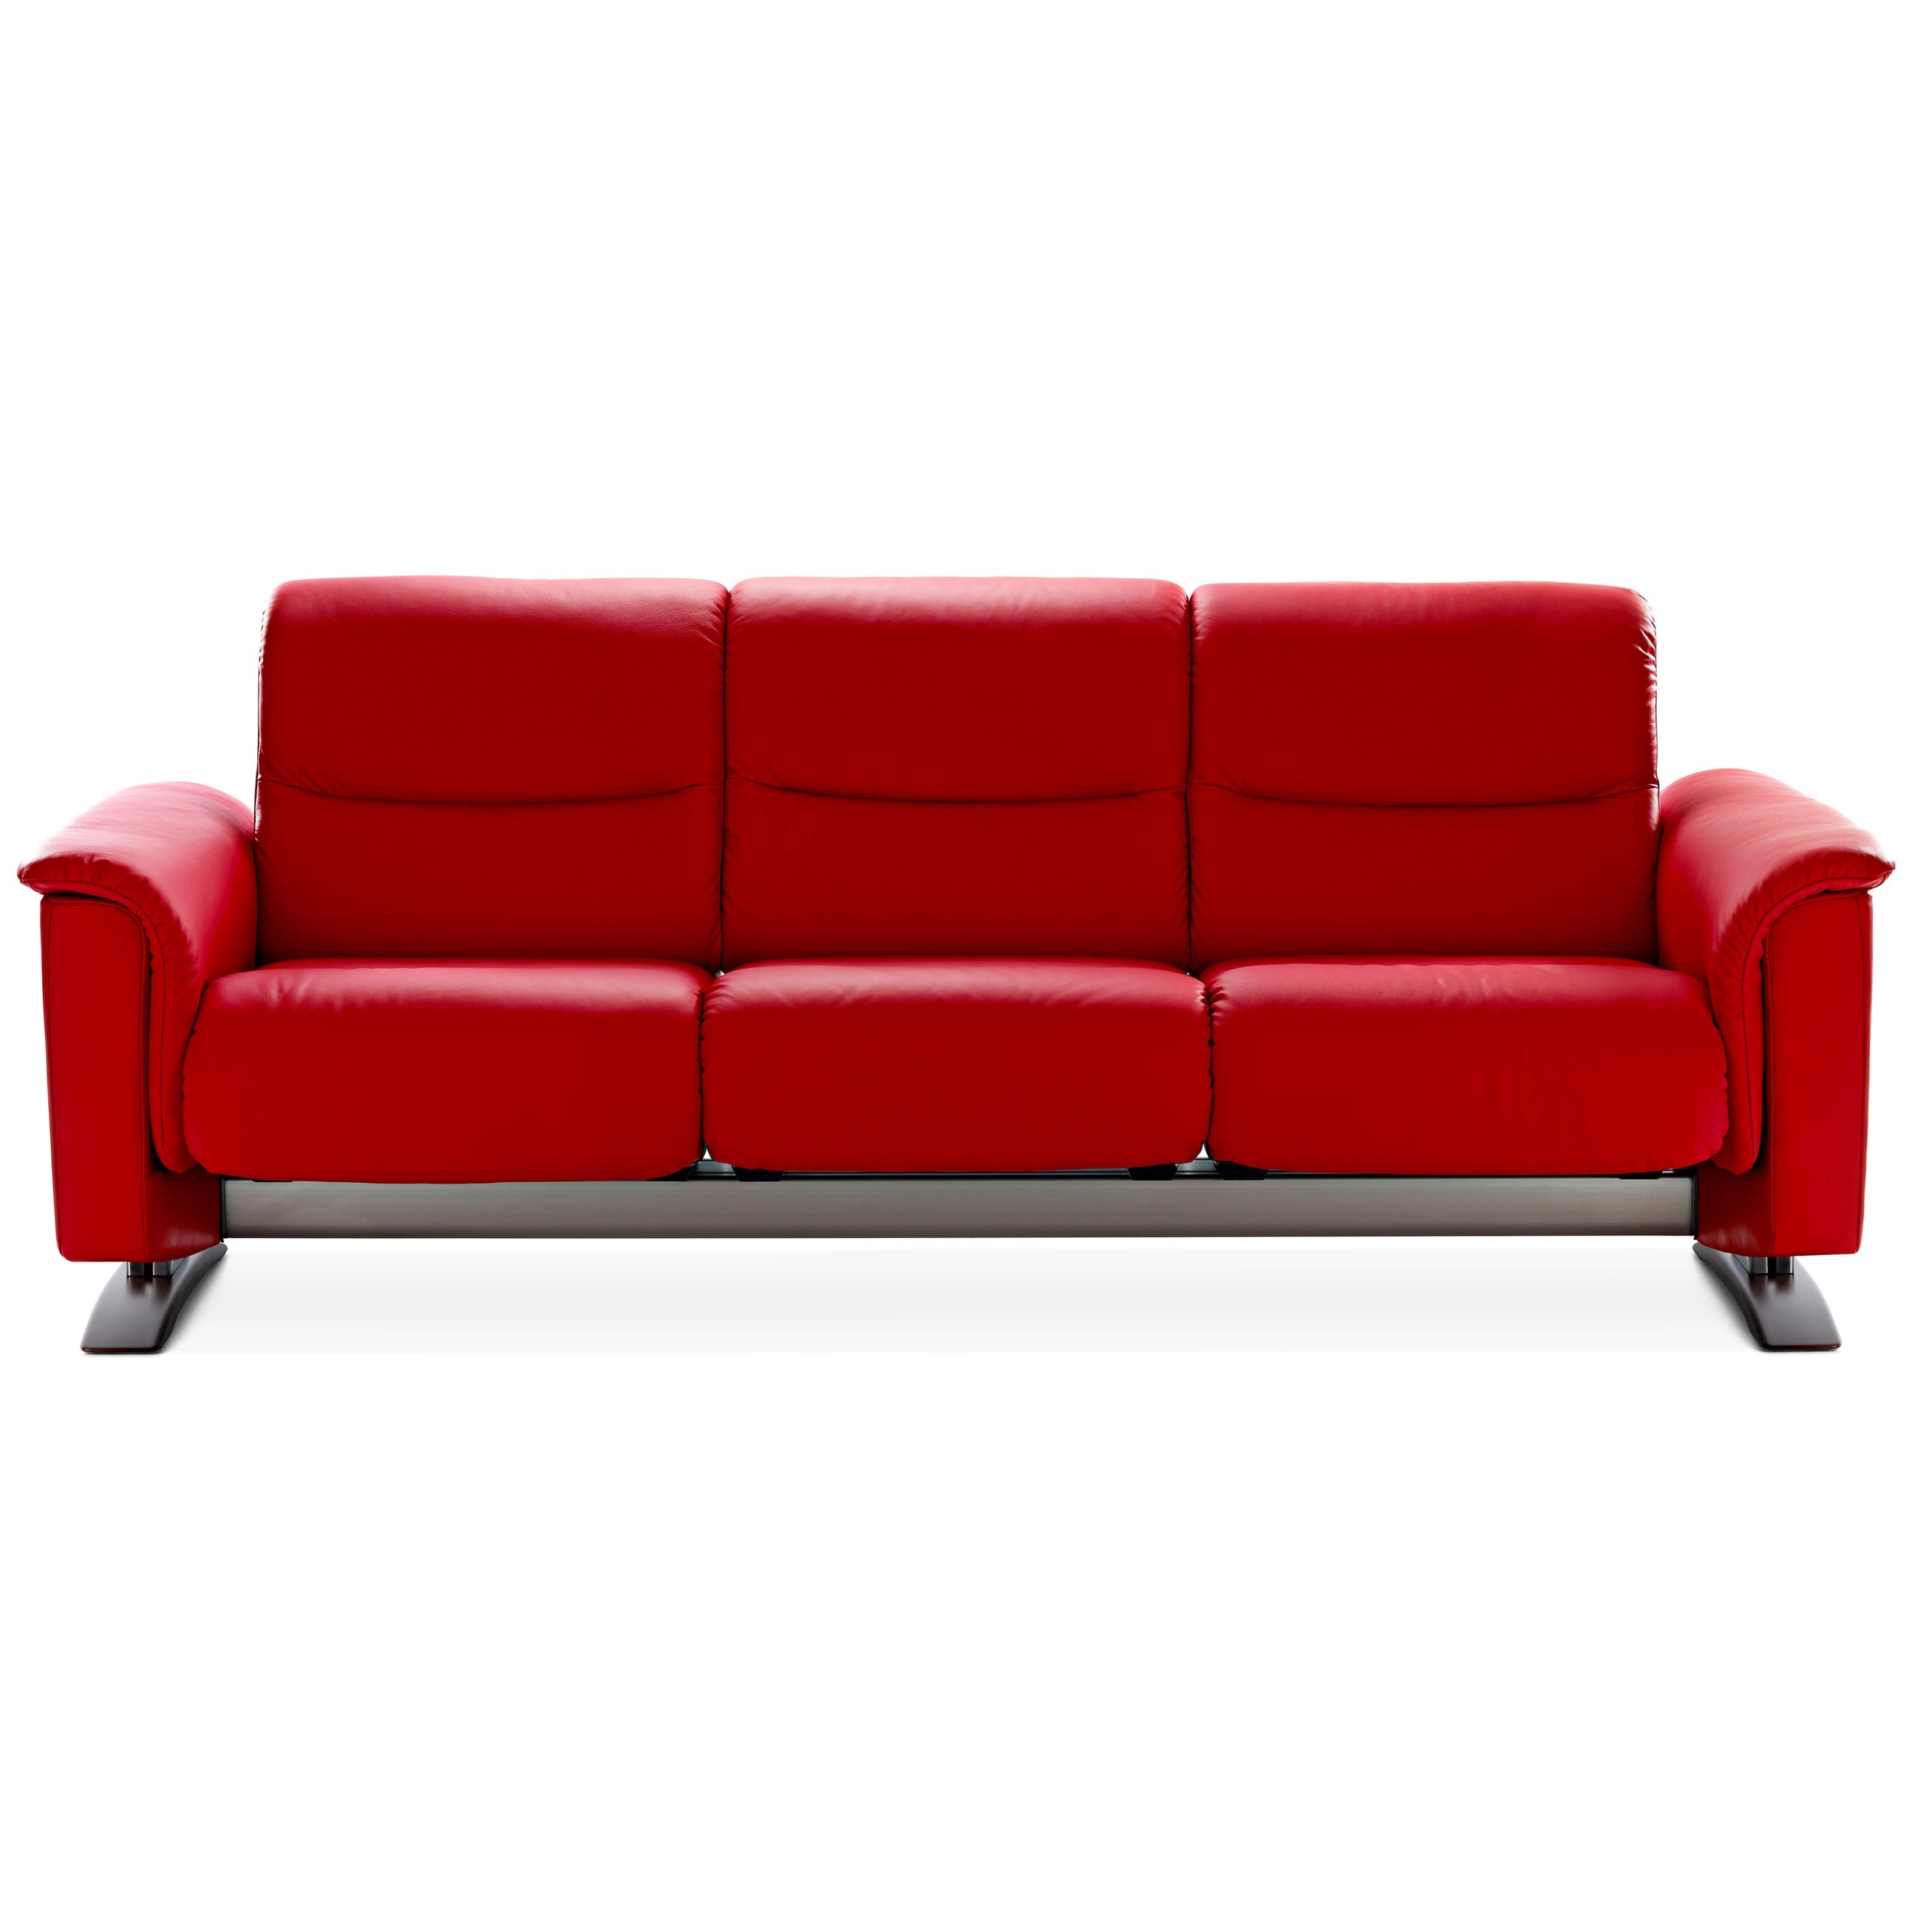 Stressless By Ekornes Stressless Panorama 1402030 3 Seater Sofa With Balanceadapt System Dunk